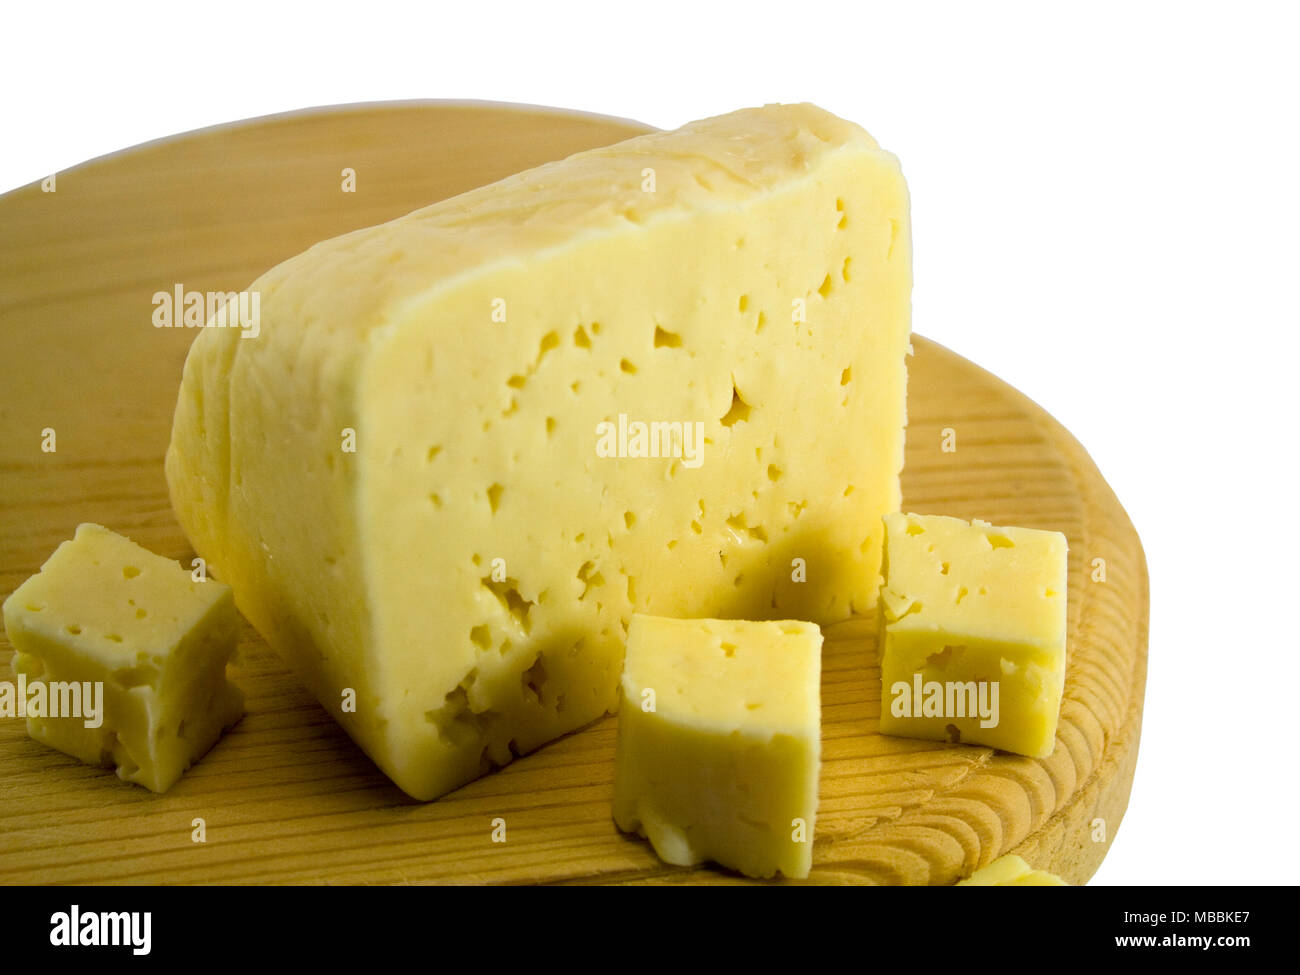 cheese on wooden boad - Stock Image